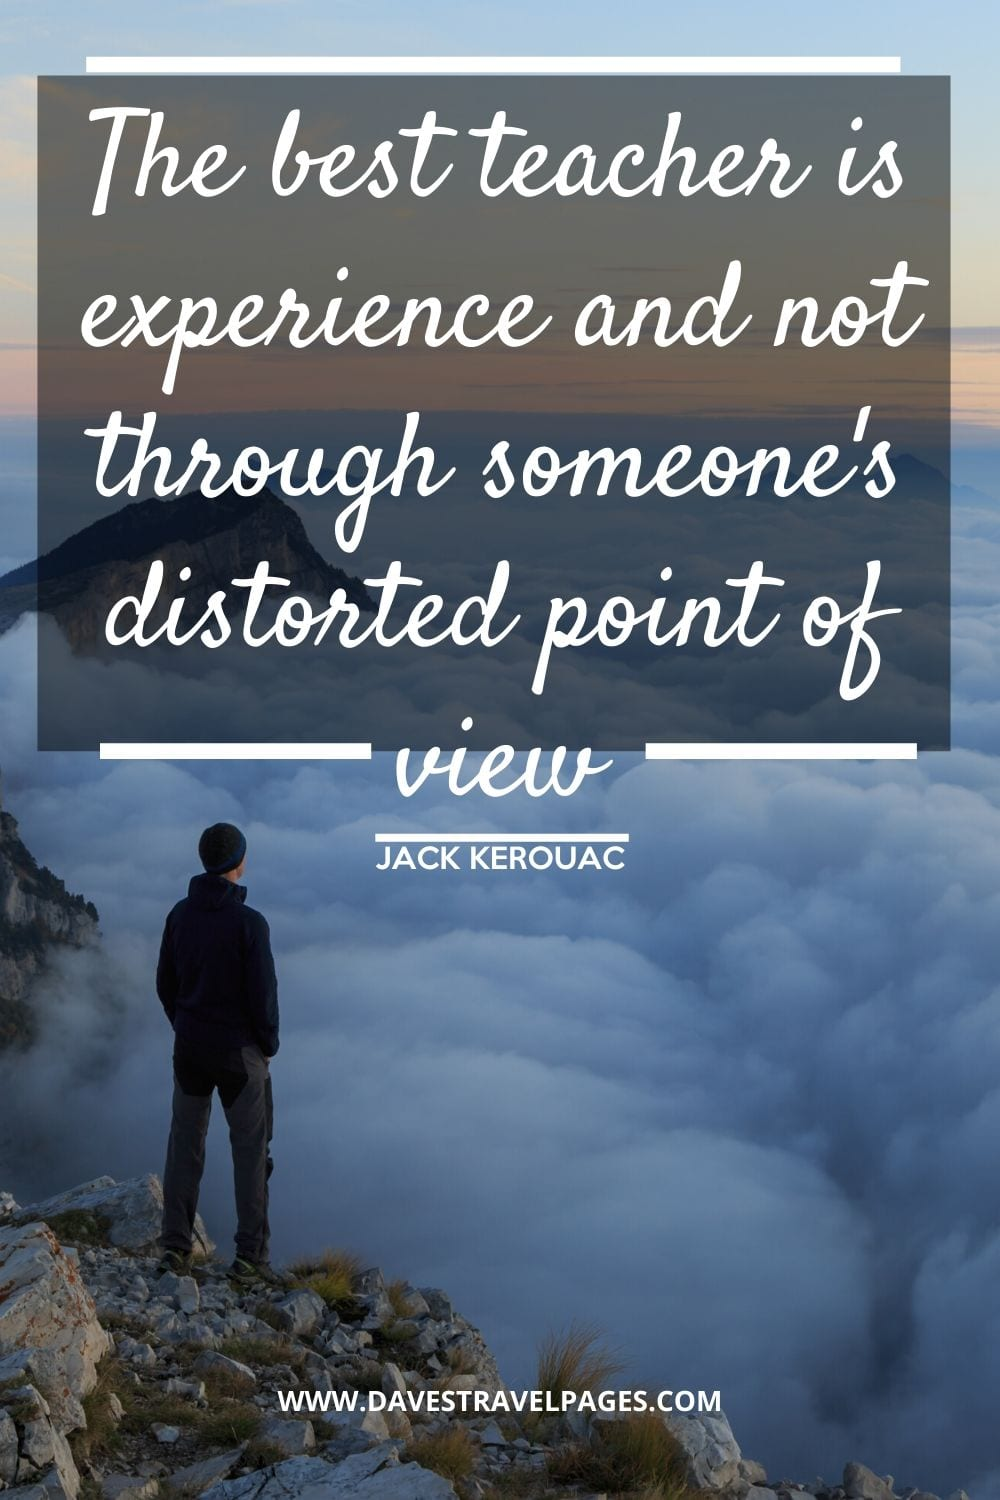 """The best teacher is experience and not through someone's distorted point of view"" - Quote from On The Road by Kerouac"